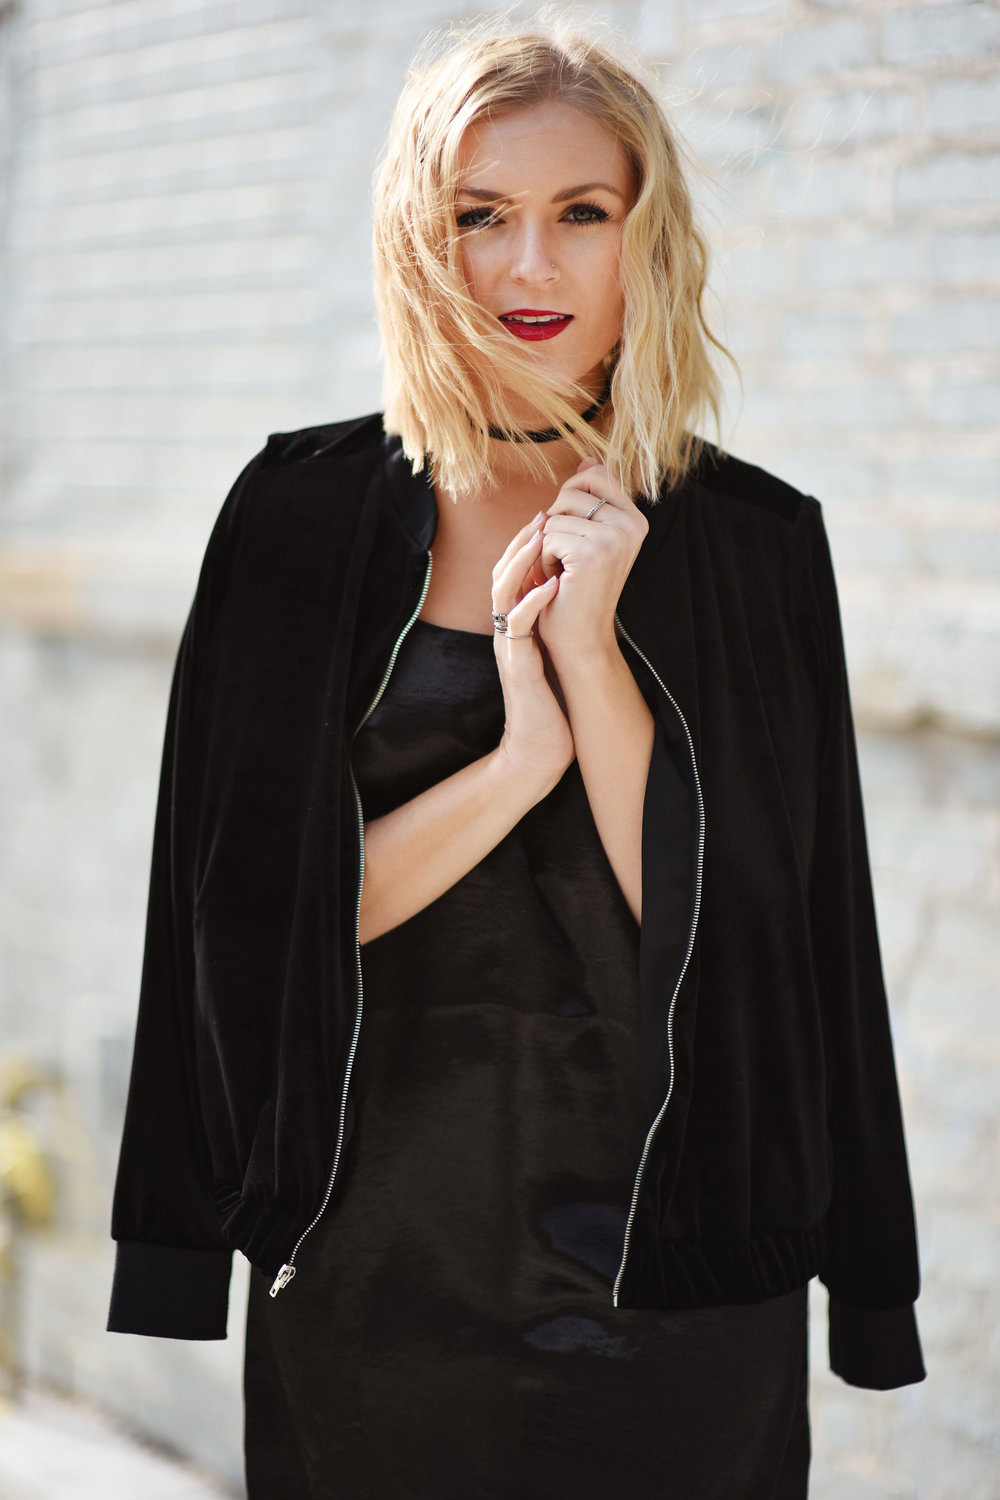 velvet-bomber-jacket-over-slip-dress